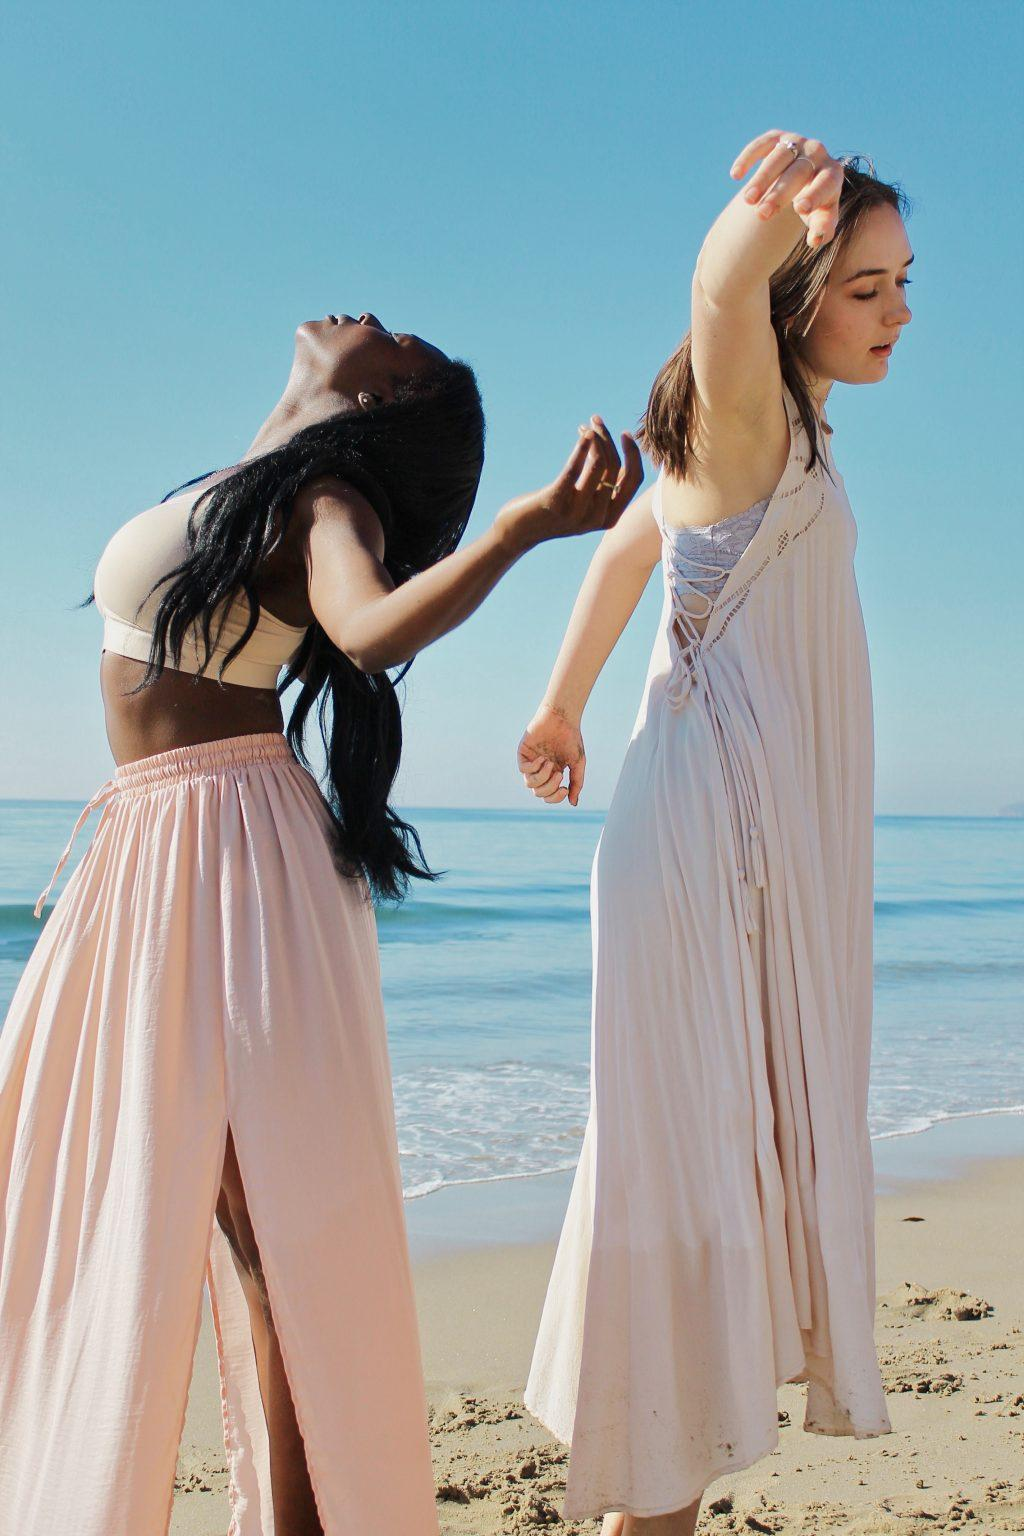 Dancers Hope Horn and Mary Grace Bridges pose during a DIF beach photo shoot. The company organized this shoot last fall in Malibu. Photo courtesy of Darcie Hill